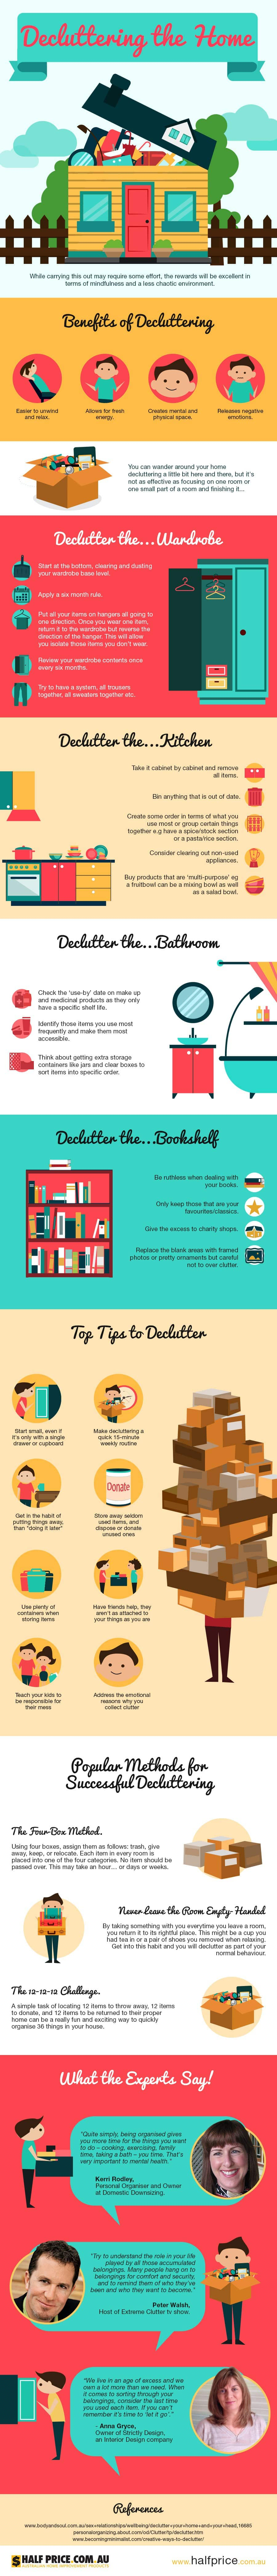 28 Awesome Tips on How To Declutter your Home (Infographic) Home Improvements Infographics Latest Posts  Condos Home Improvements Infographic Winnipeg